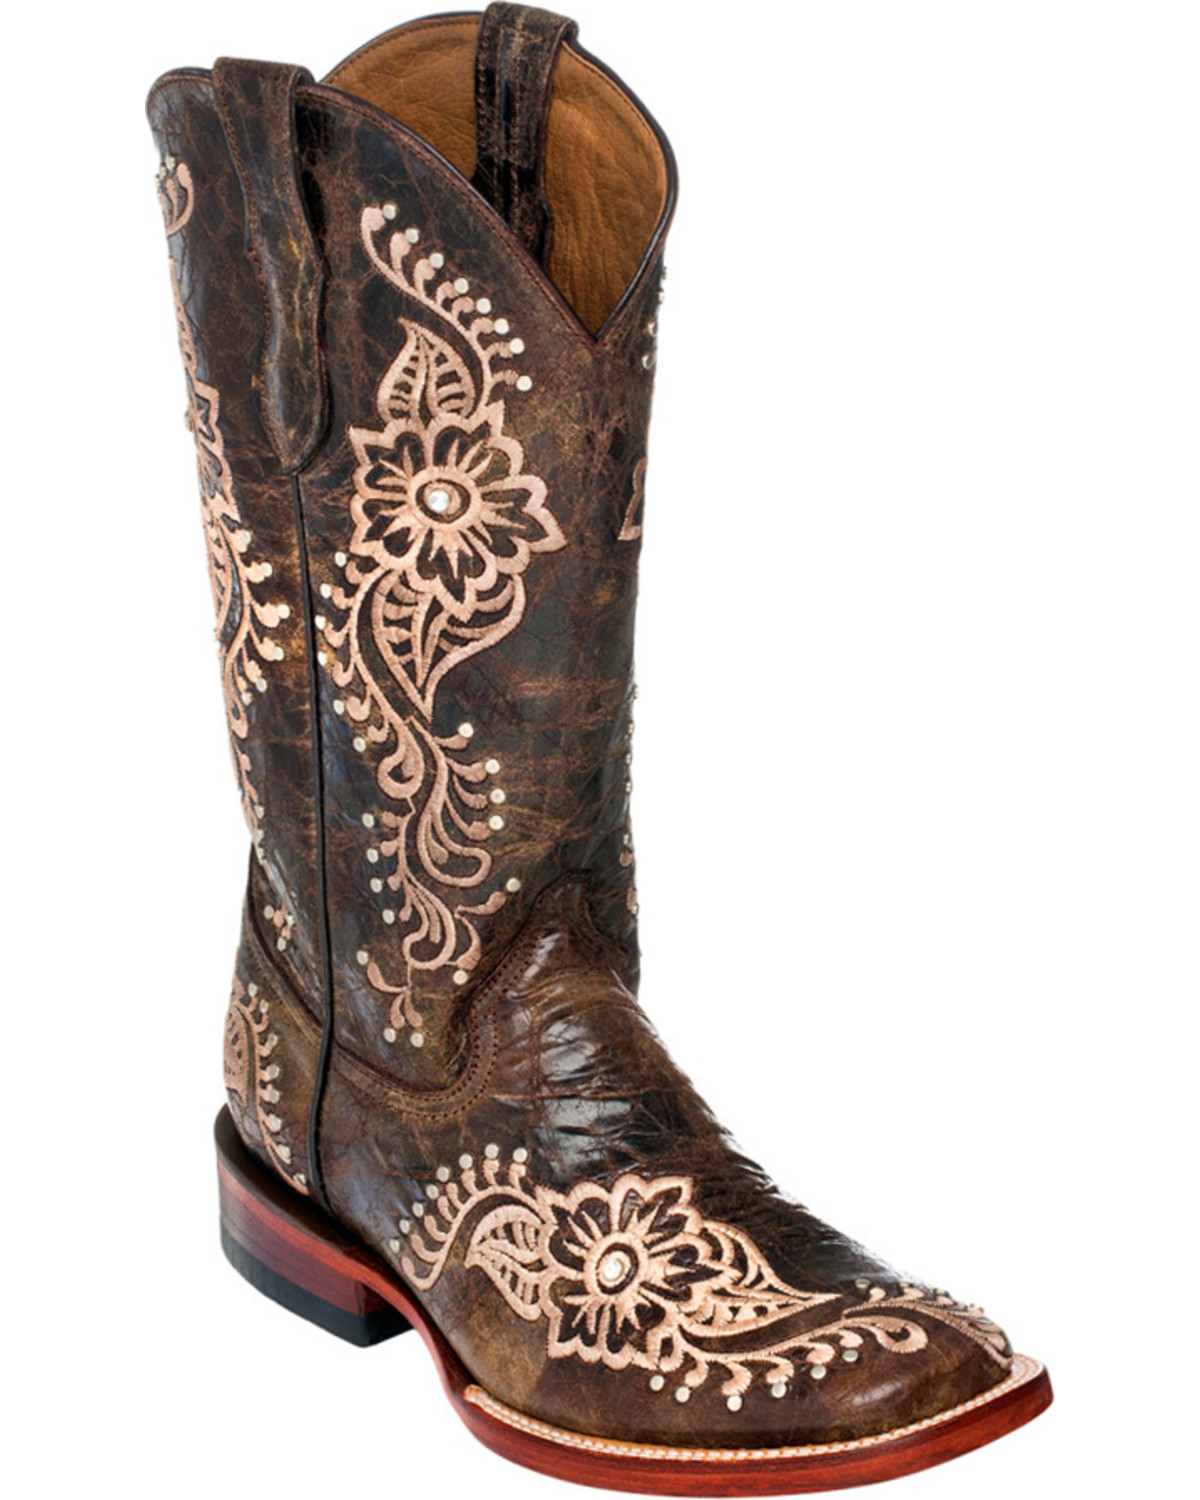 Bathroom scales boots - Ferrini Chocolate Wild Flower Cowgirl Boots Square Toe Chocolate Hi Res